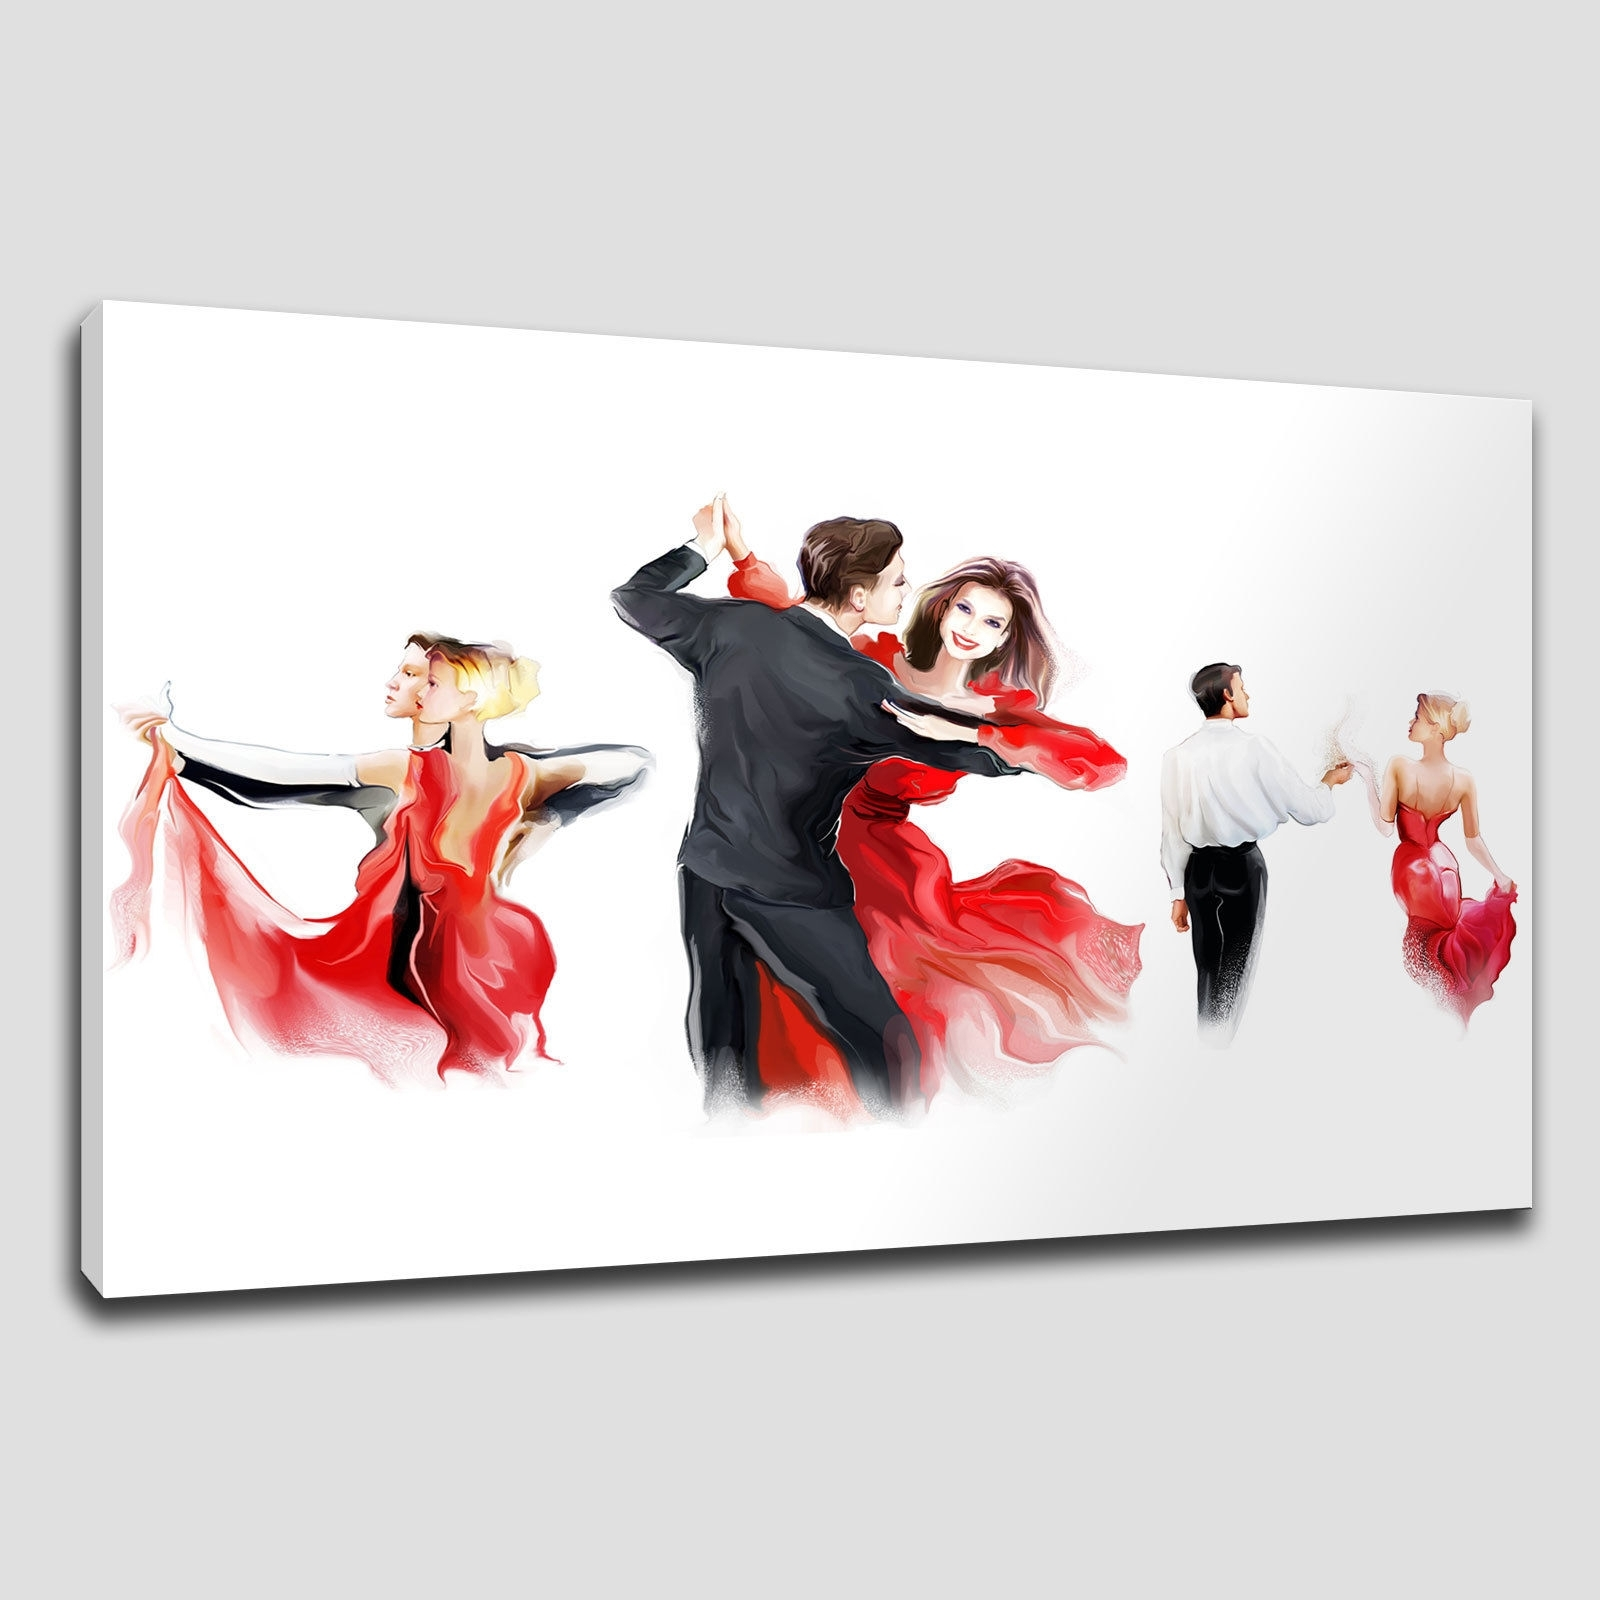 Best And Newest Wall Art: Extraordinary Red Canvas Wall Art Wall Art In Red, Black Inside Large Red Canvas Wall Art (View 2 of 15)